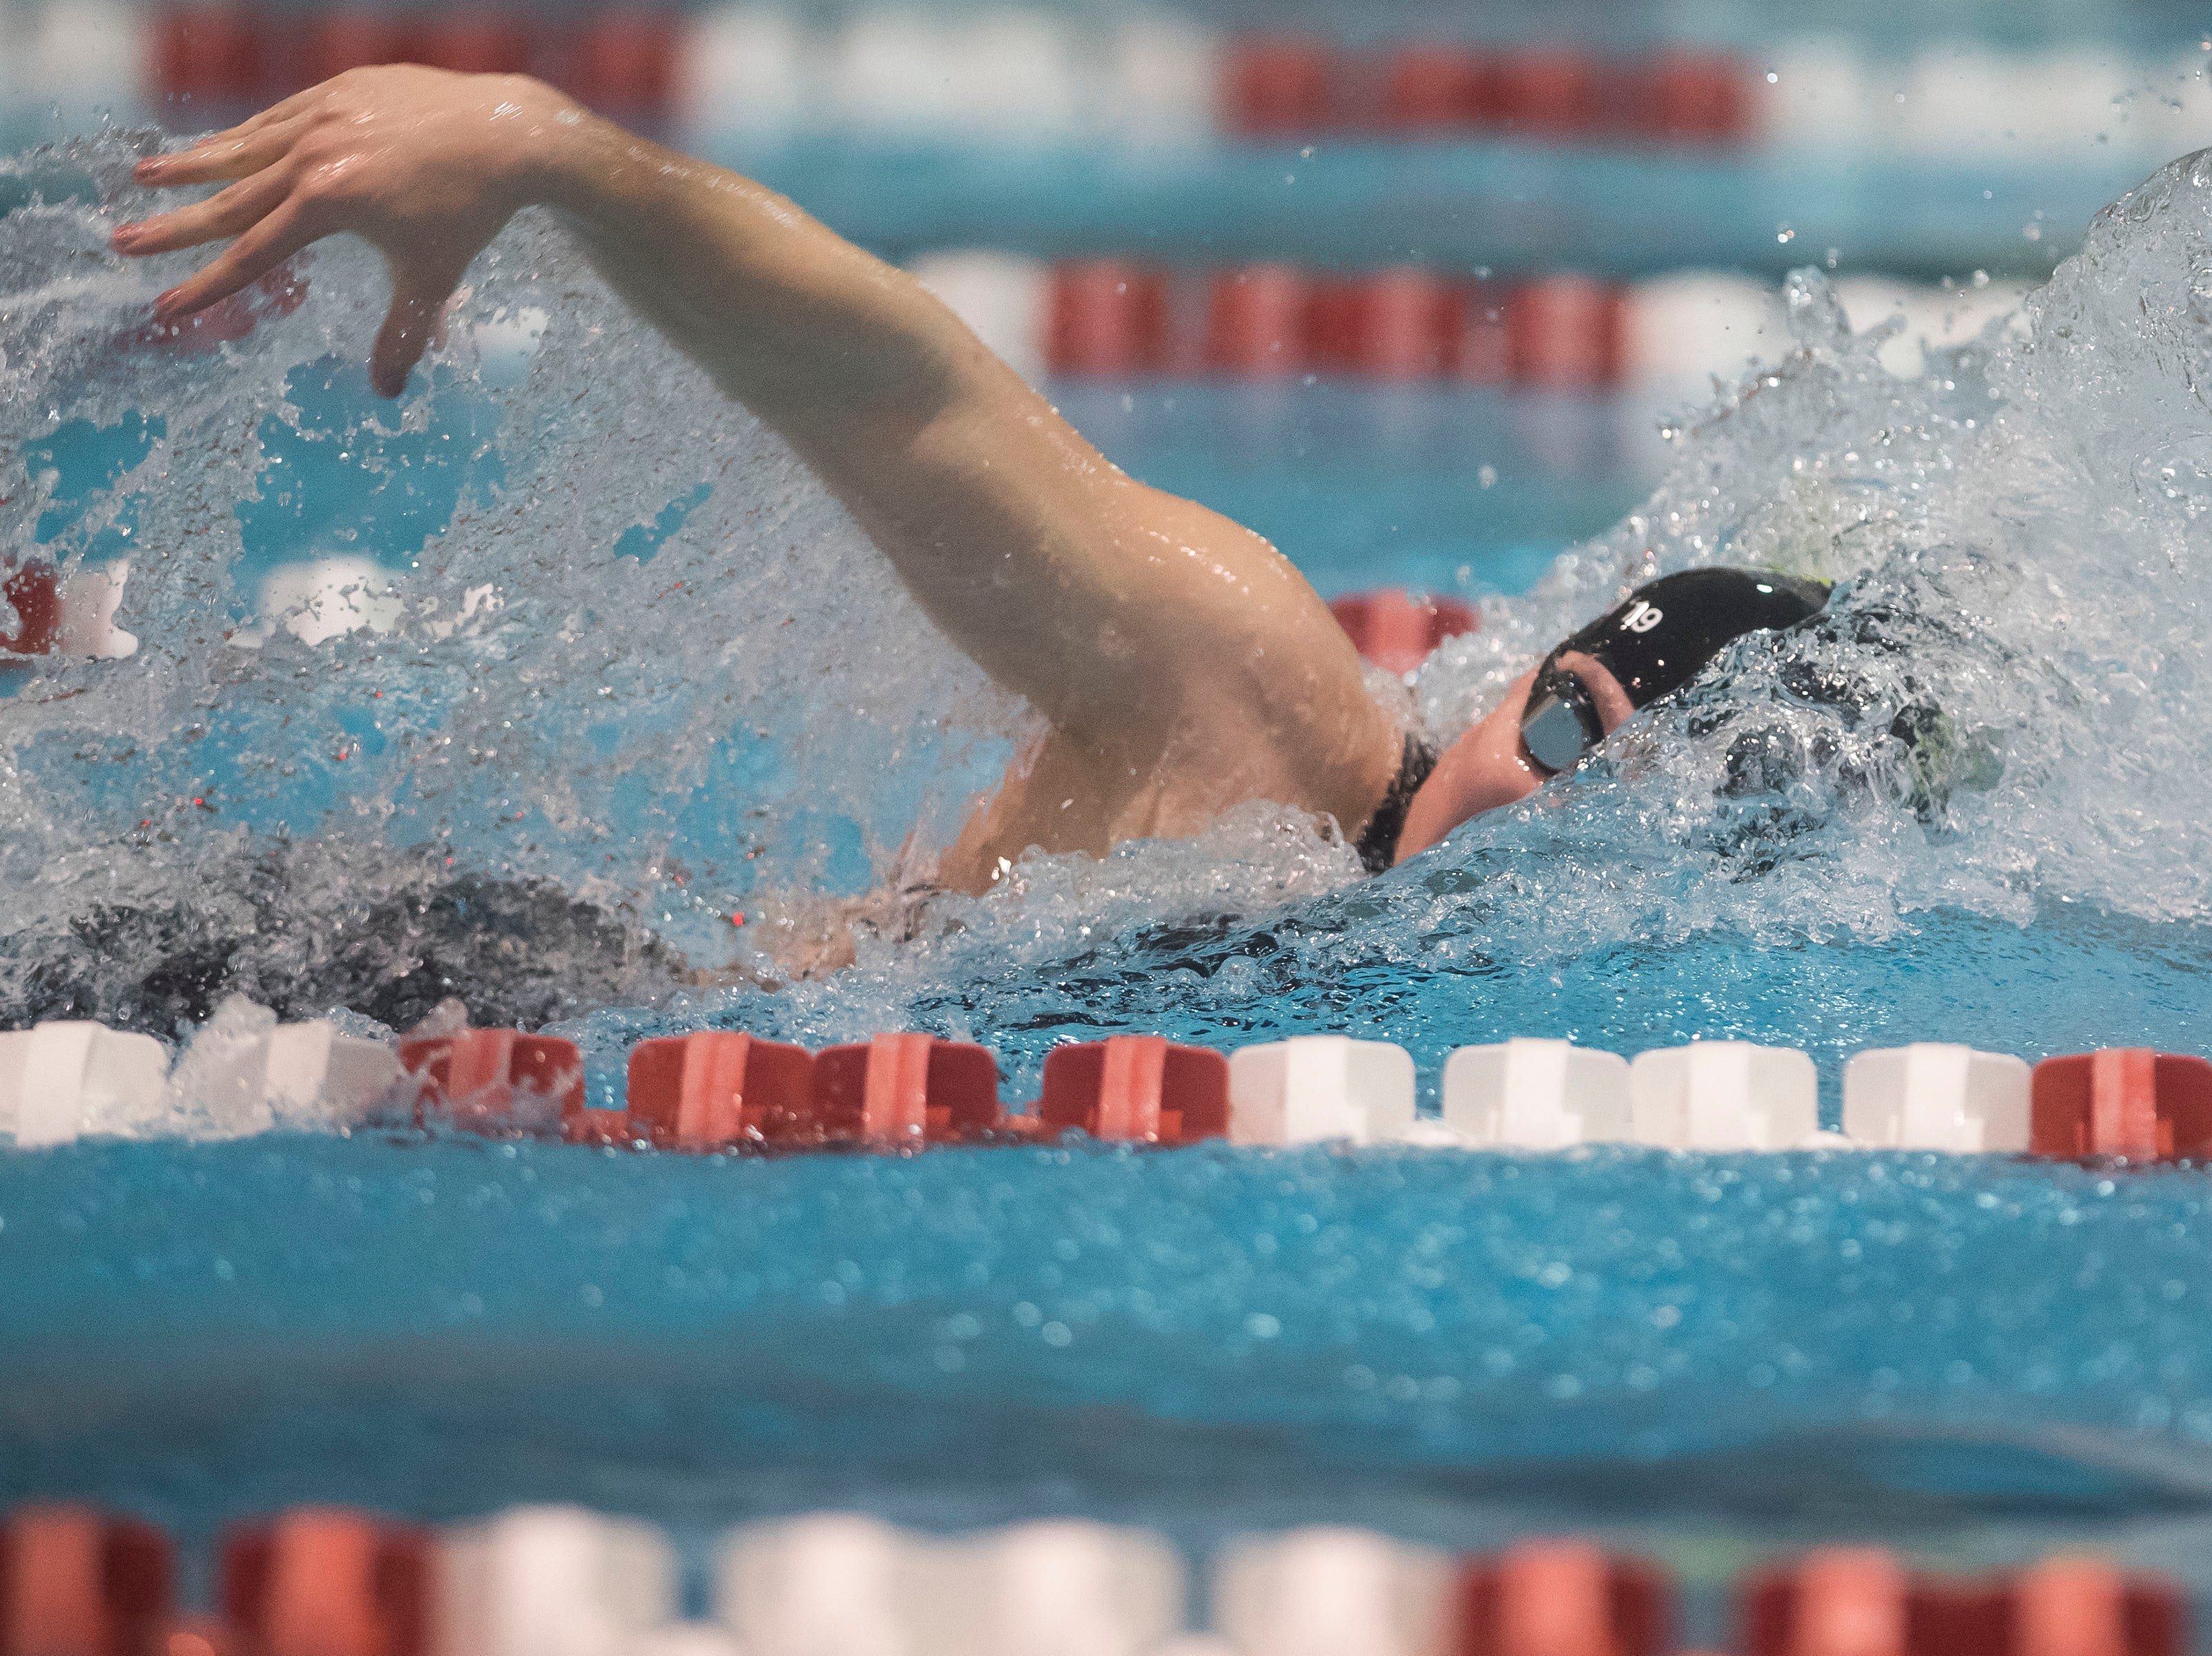 Fossil Ridge senior Coleen Gillilan anchors her team in their win in the women's 400 yard freestyle relay on Saturday, Feb. 9, 2019, at Veterans Memorial Aquatic Center in Thornton, Colo.